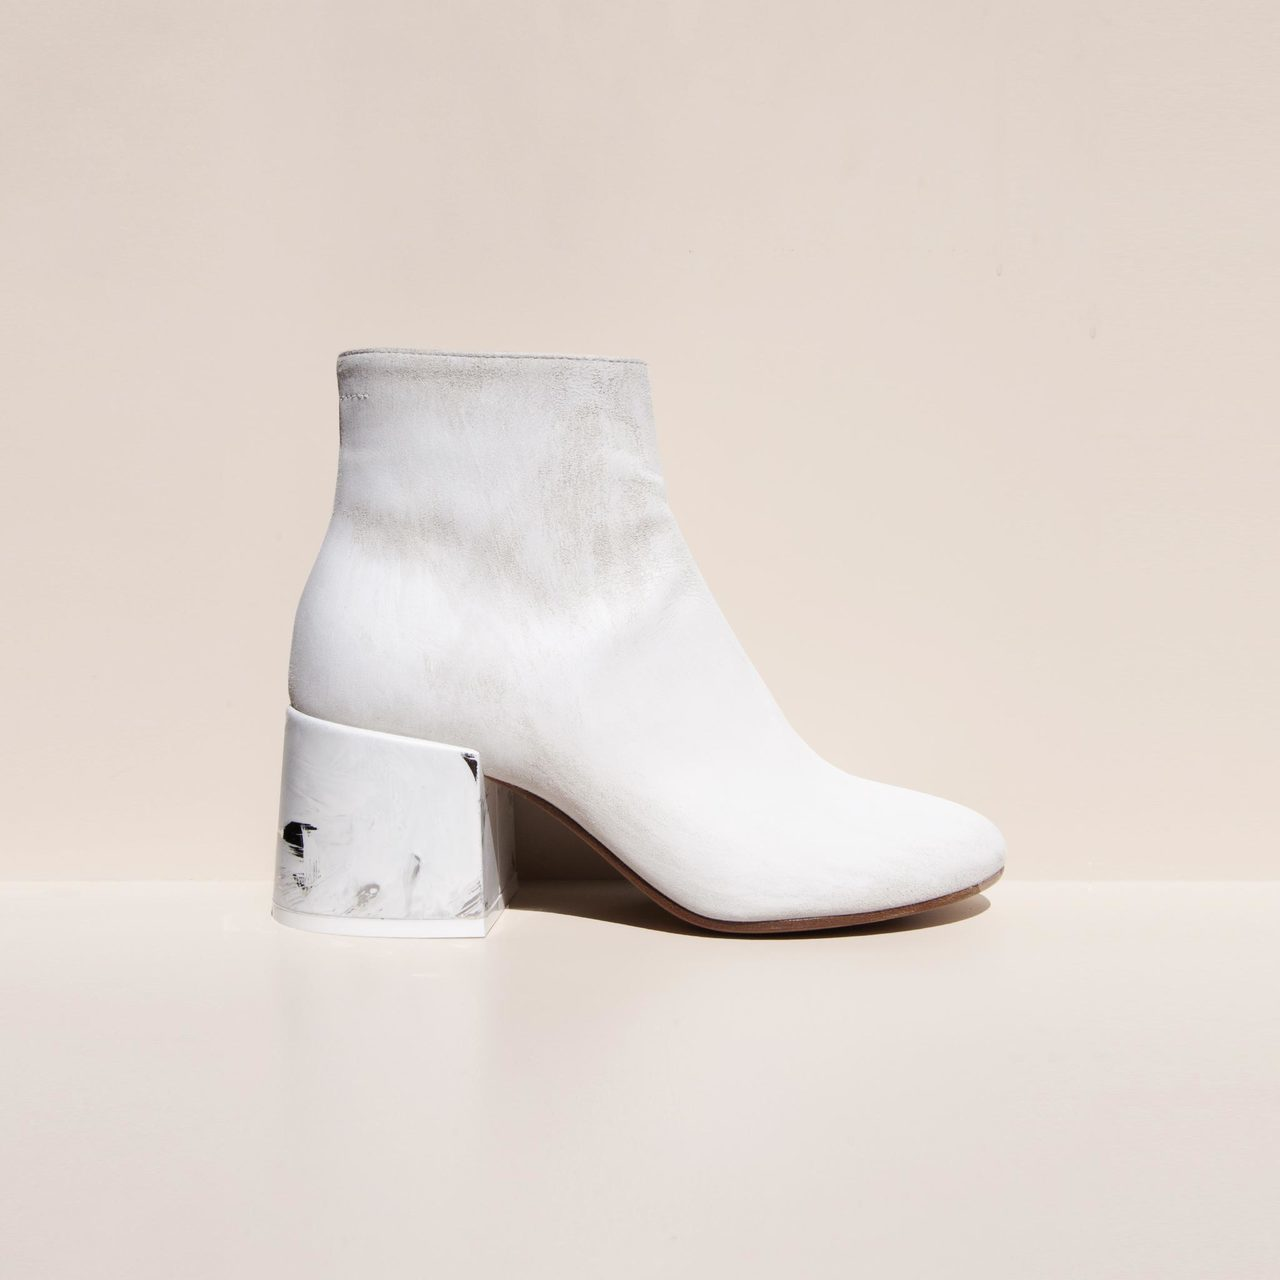 Painted Leather Ankle Boots